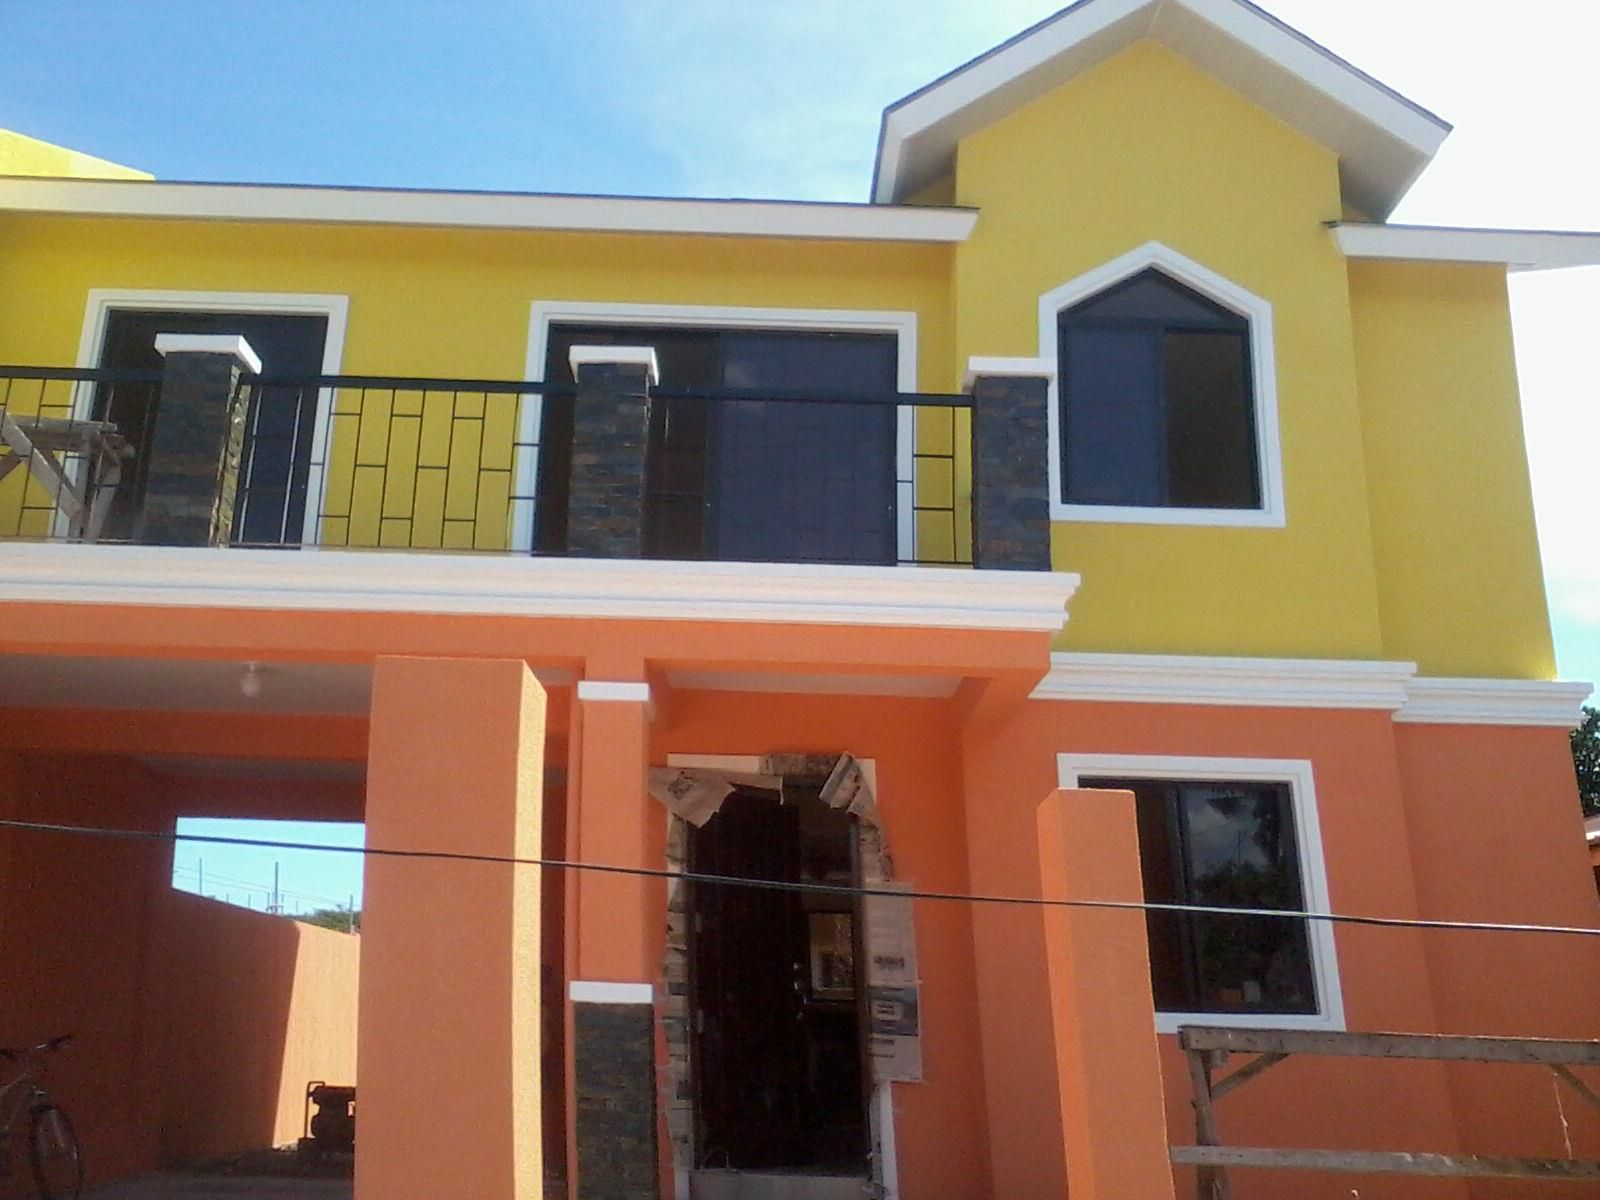 design home plans iloilo houses plans and designs building plans for homes new home builders houses builders house design house designs philippines house design phillipine house design home design modern house design philippine house designs